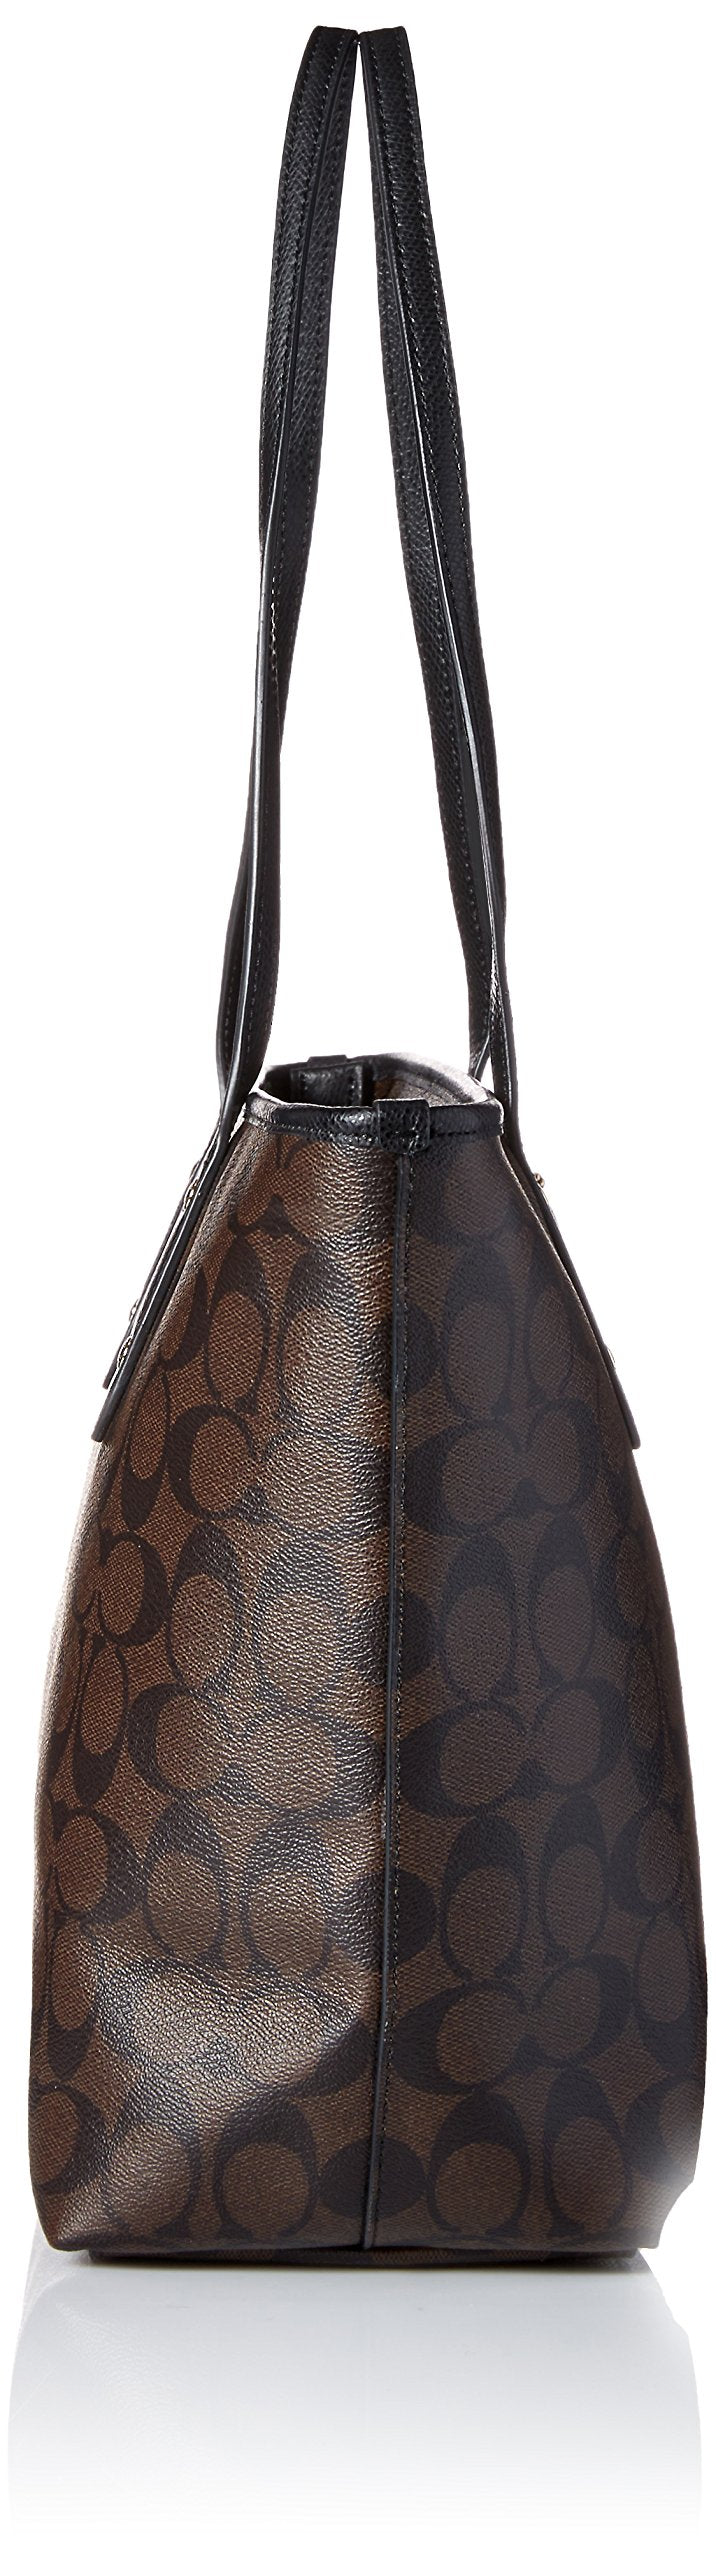 0d142498e0 Discount Coach Handbags & Purse with Free Shipping by Watchcove